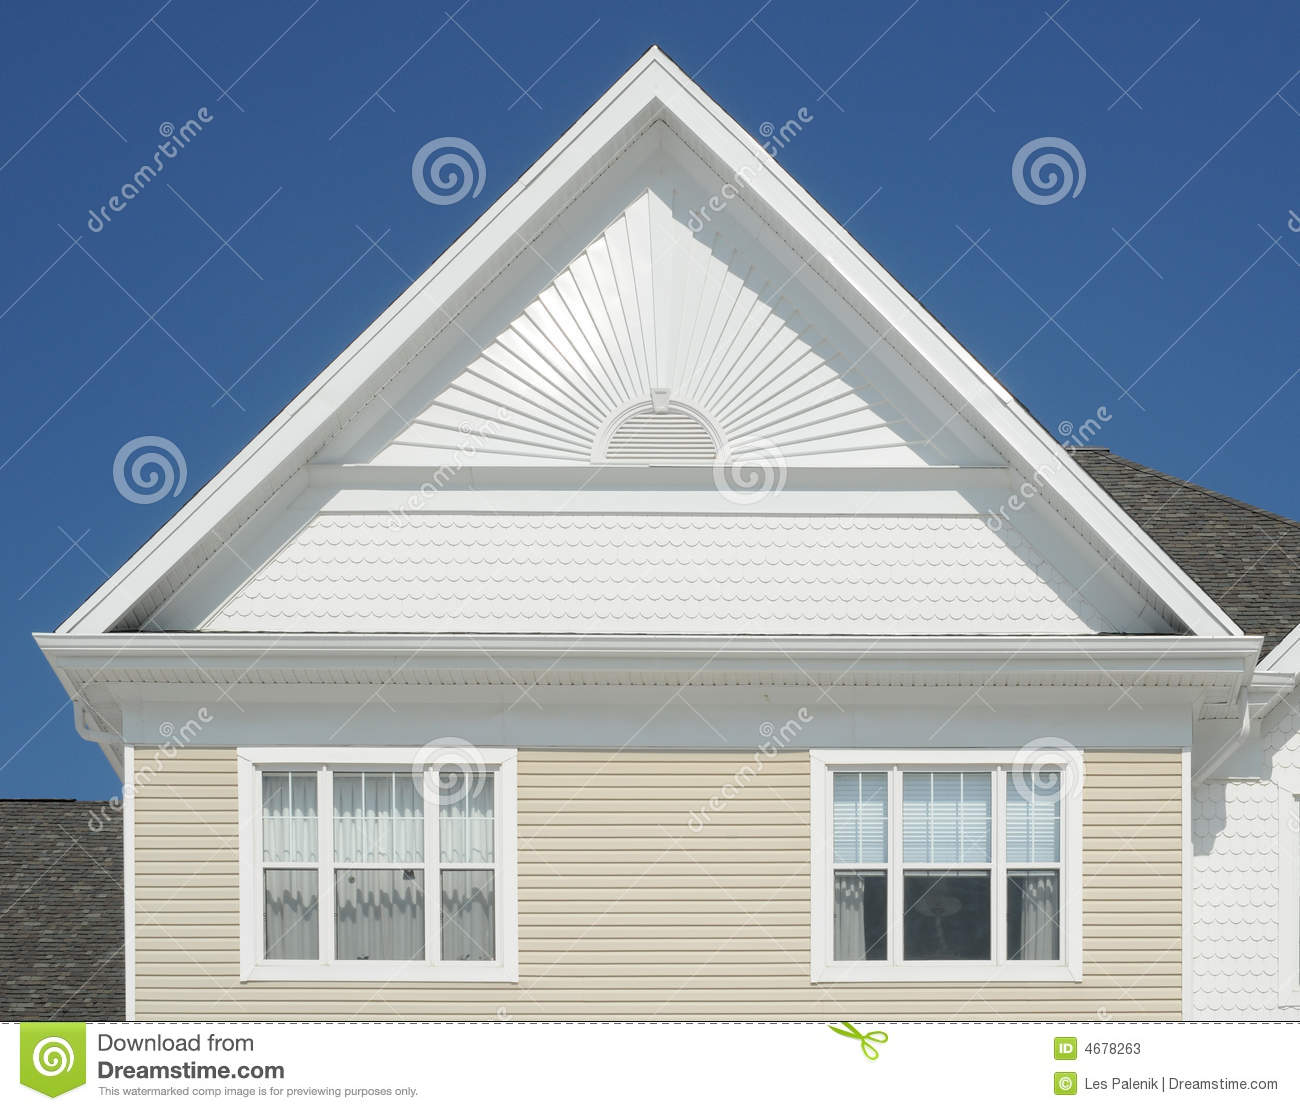 Picture Of A Gable Roof: Gable Roof On A House Stock Image. Image Of Triangle